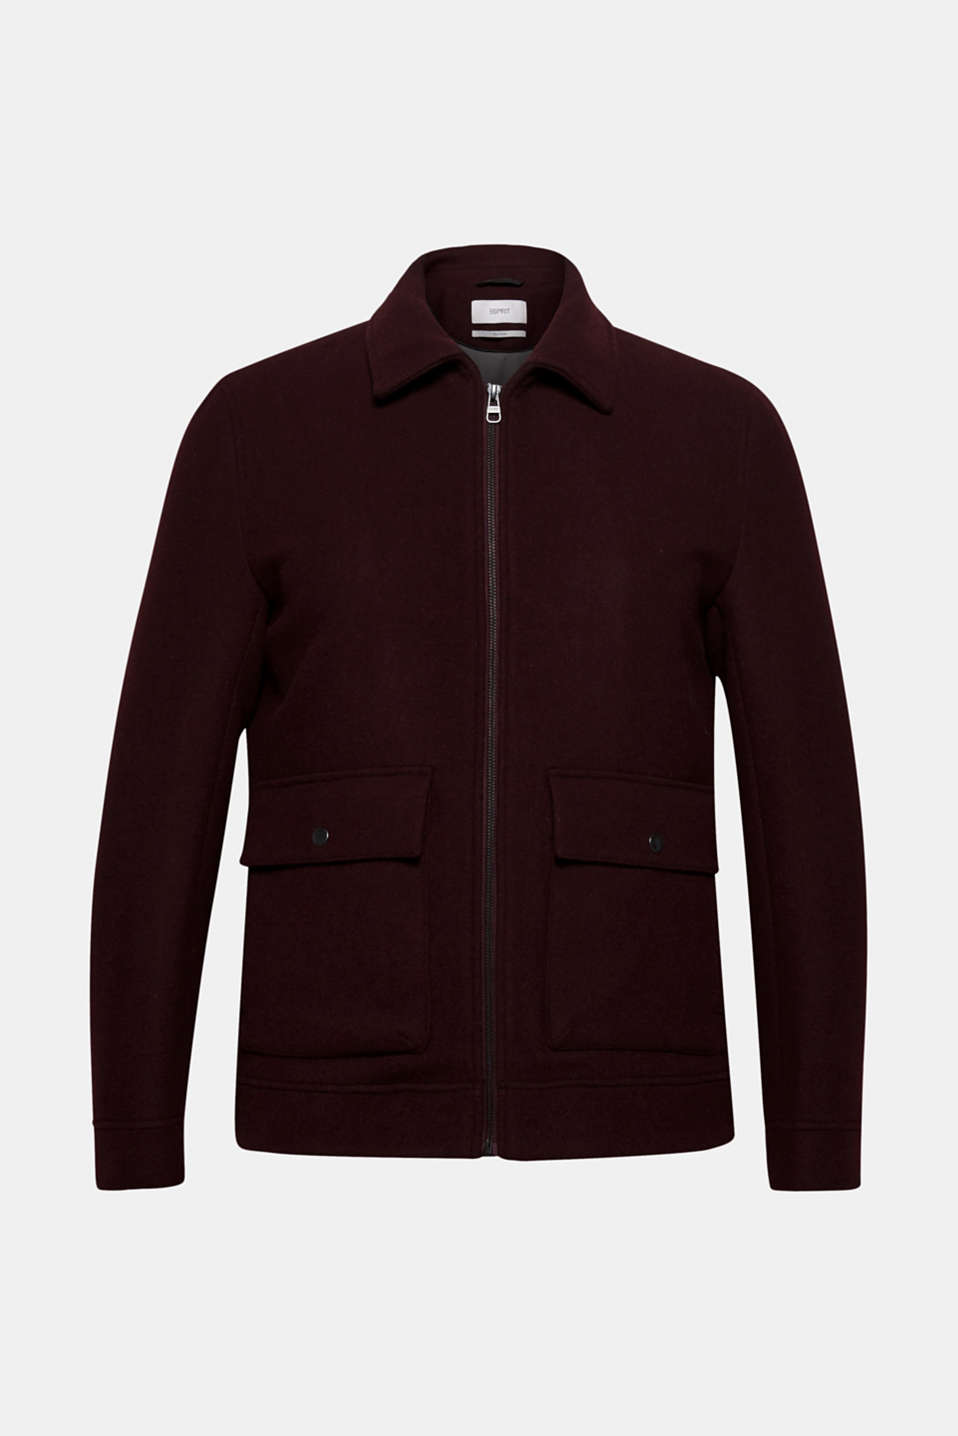 Wool blend: Bomber jacket with a shirt collar, BORDEAUX RED, detail image number 7